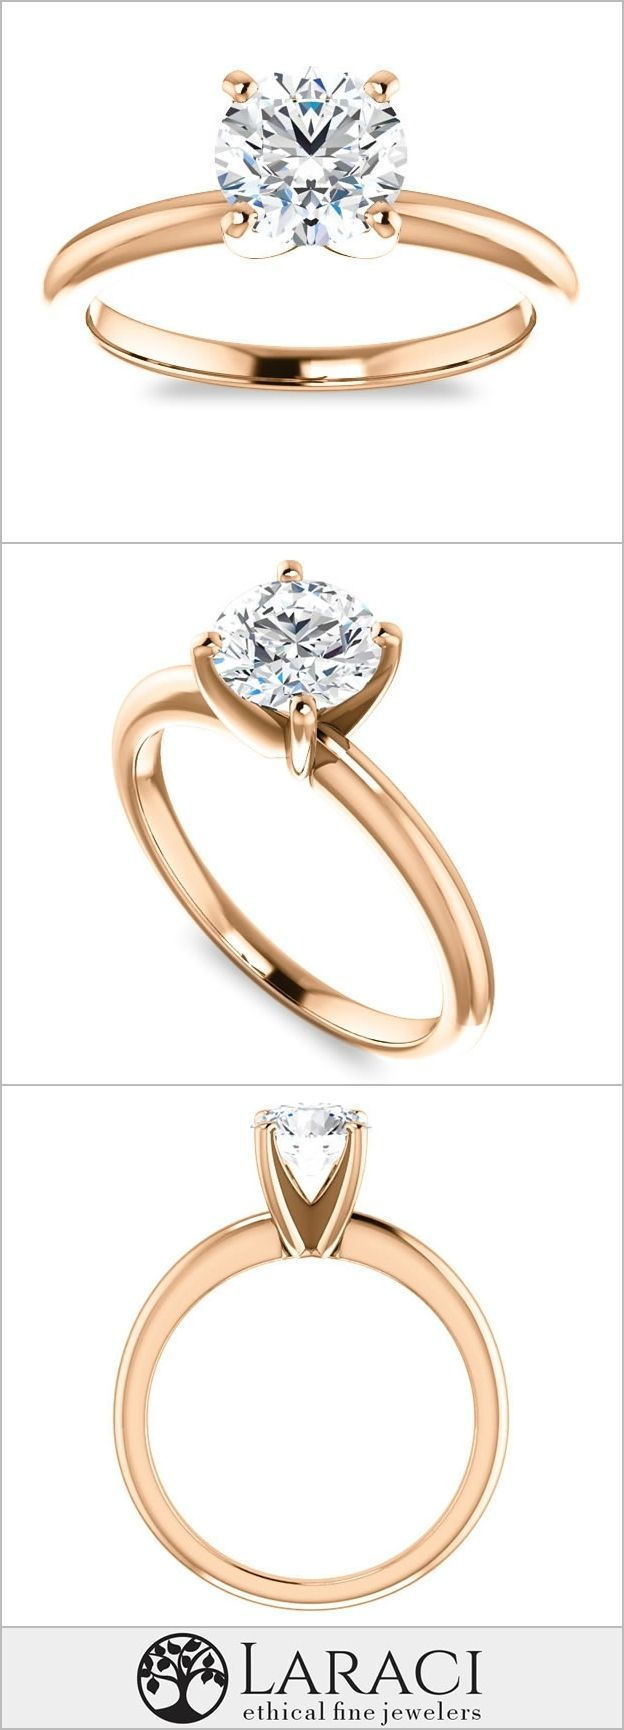 18K Rose Gold Solitaire Engagement Ring set with a 1.9ct (8mm) Round Forever One Near Colorless Moissanite